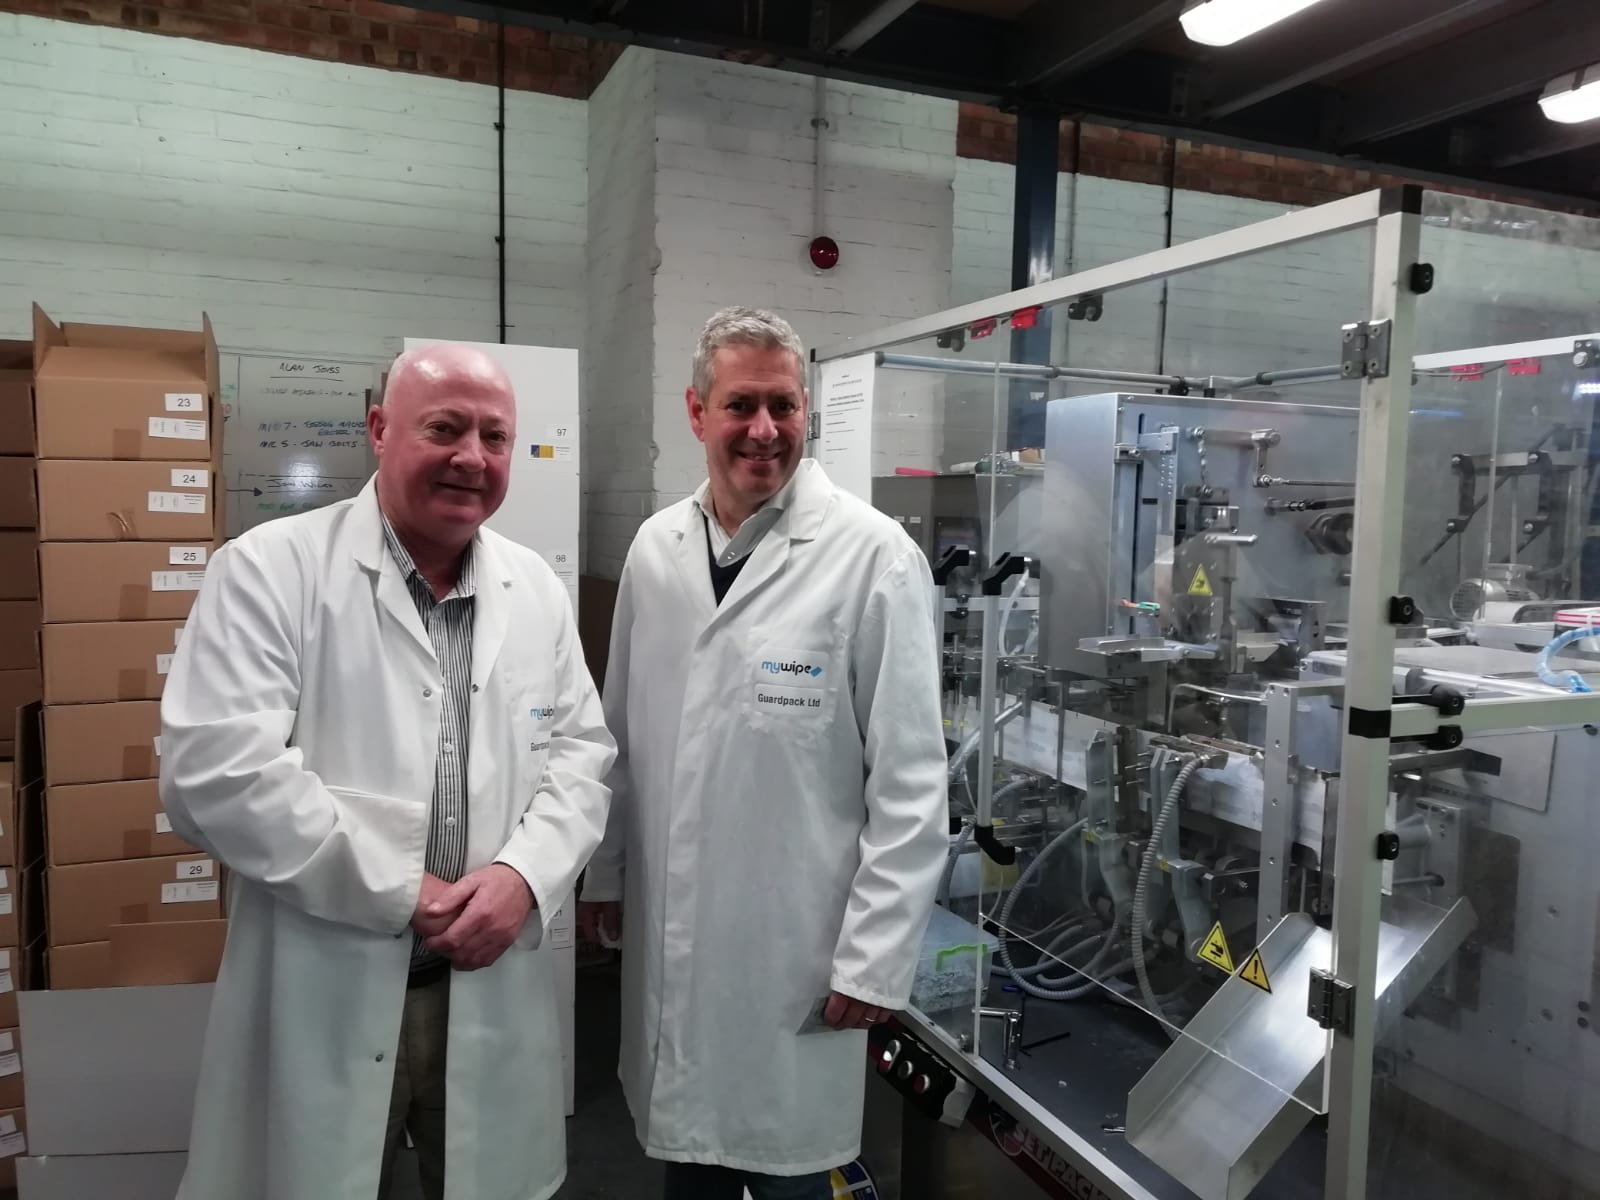 Brian meets with Guardpack's CEO Jeremy Freedman for pre-production discussions about soluble wet wipes.